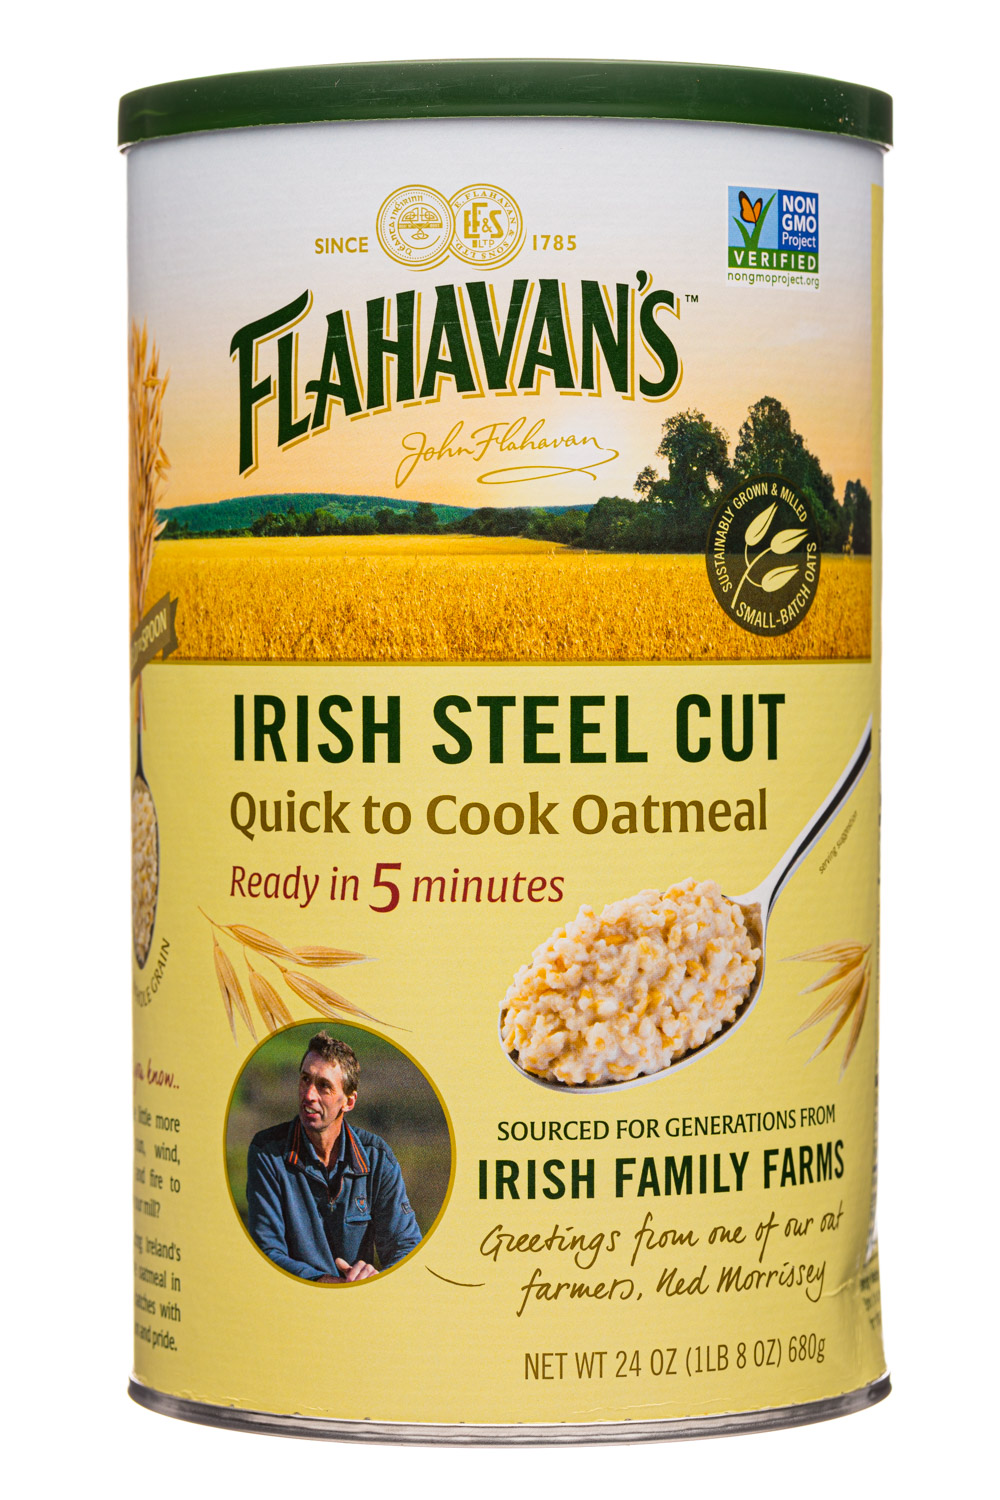 Irish Steel Cut (24oz jar)